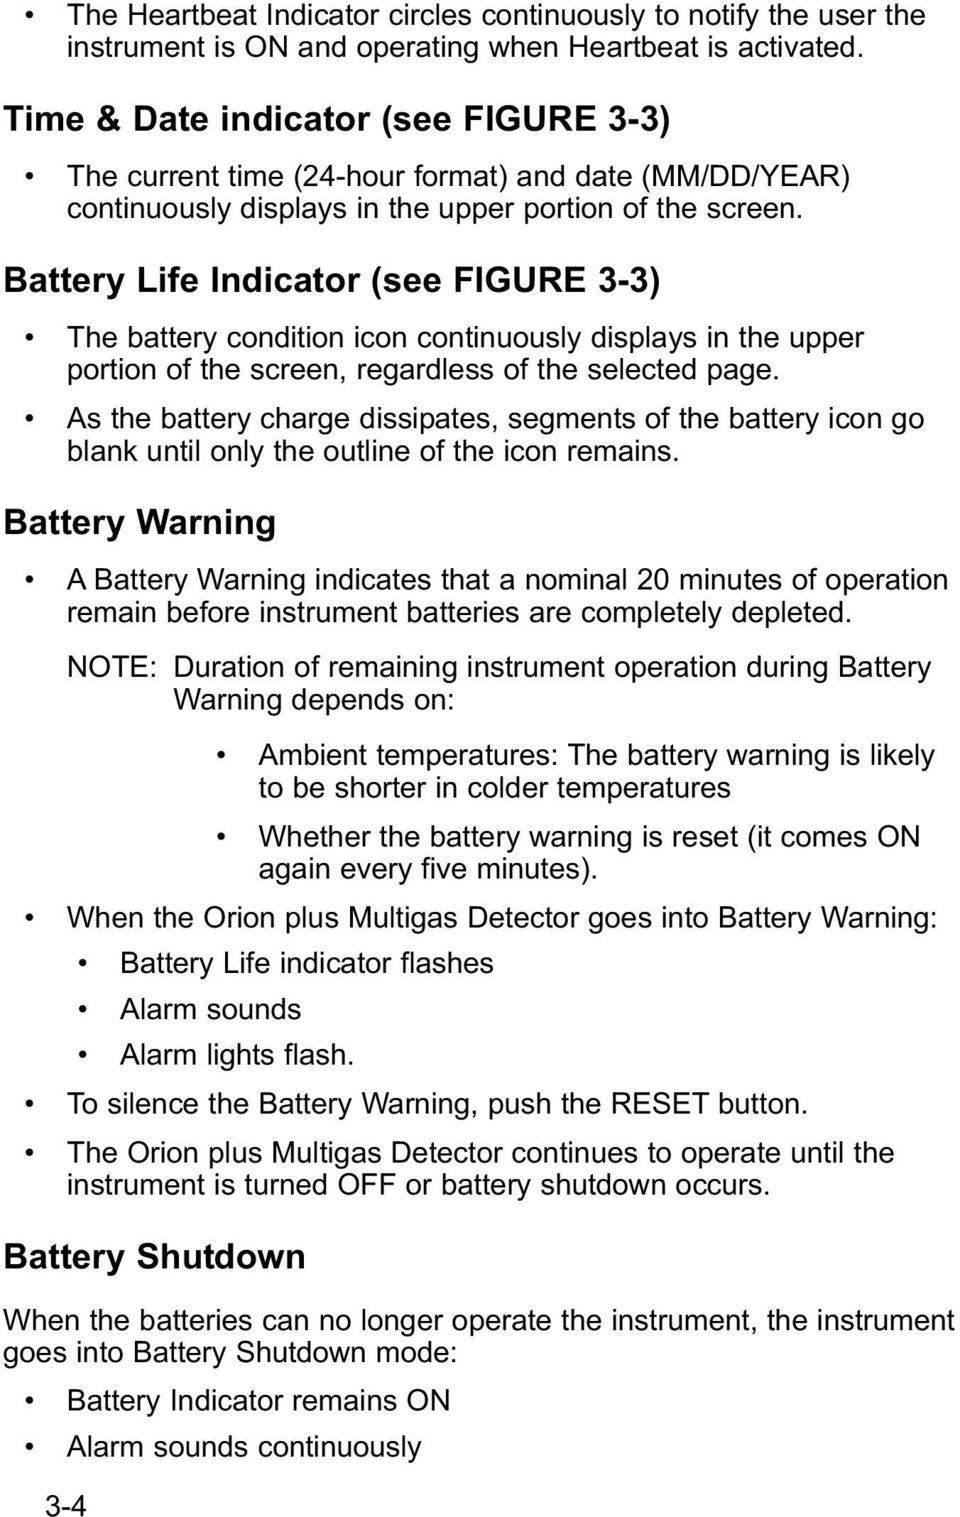 Battery Life Indicator (see FIGURE 3-3) The battery condition icon continuously displays in the upper portion of the screen, regardless of the selected page.